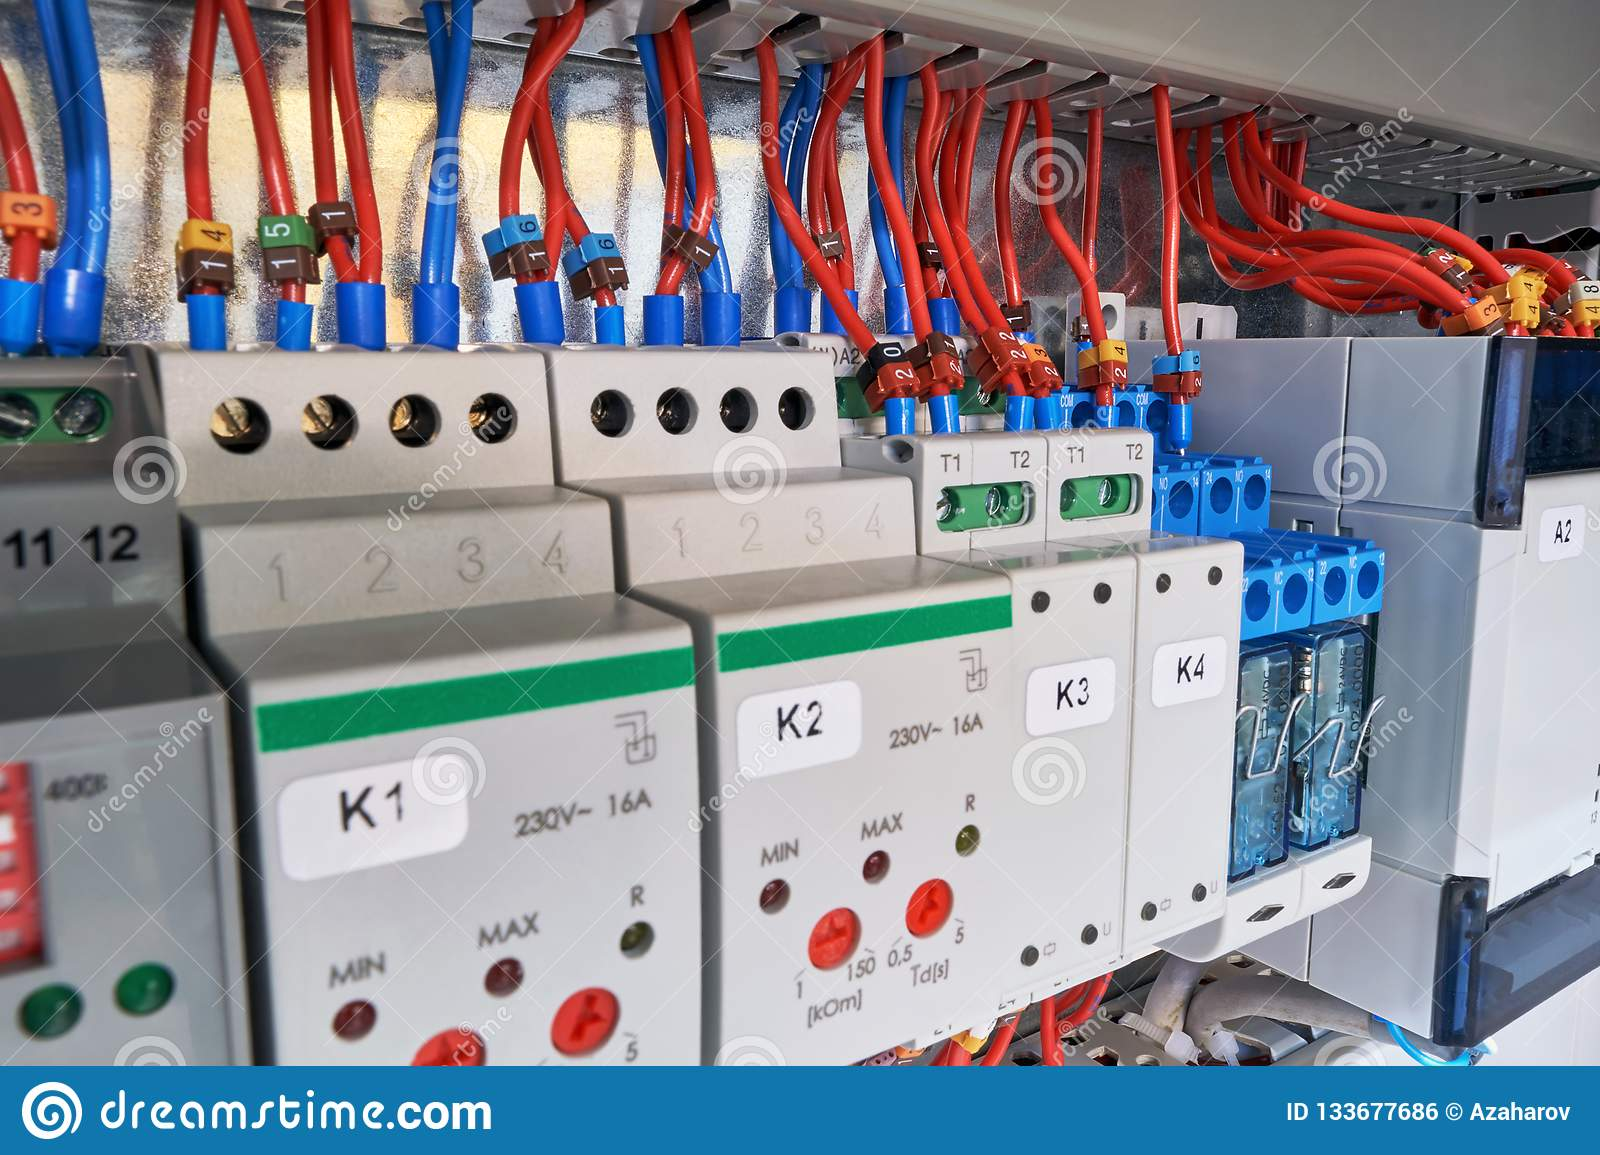 In the electrical Cabinet of the device with adjustment, relay and controller